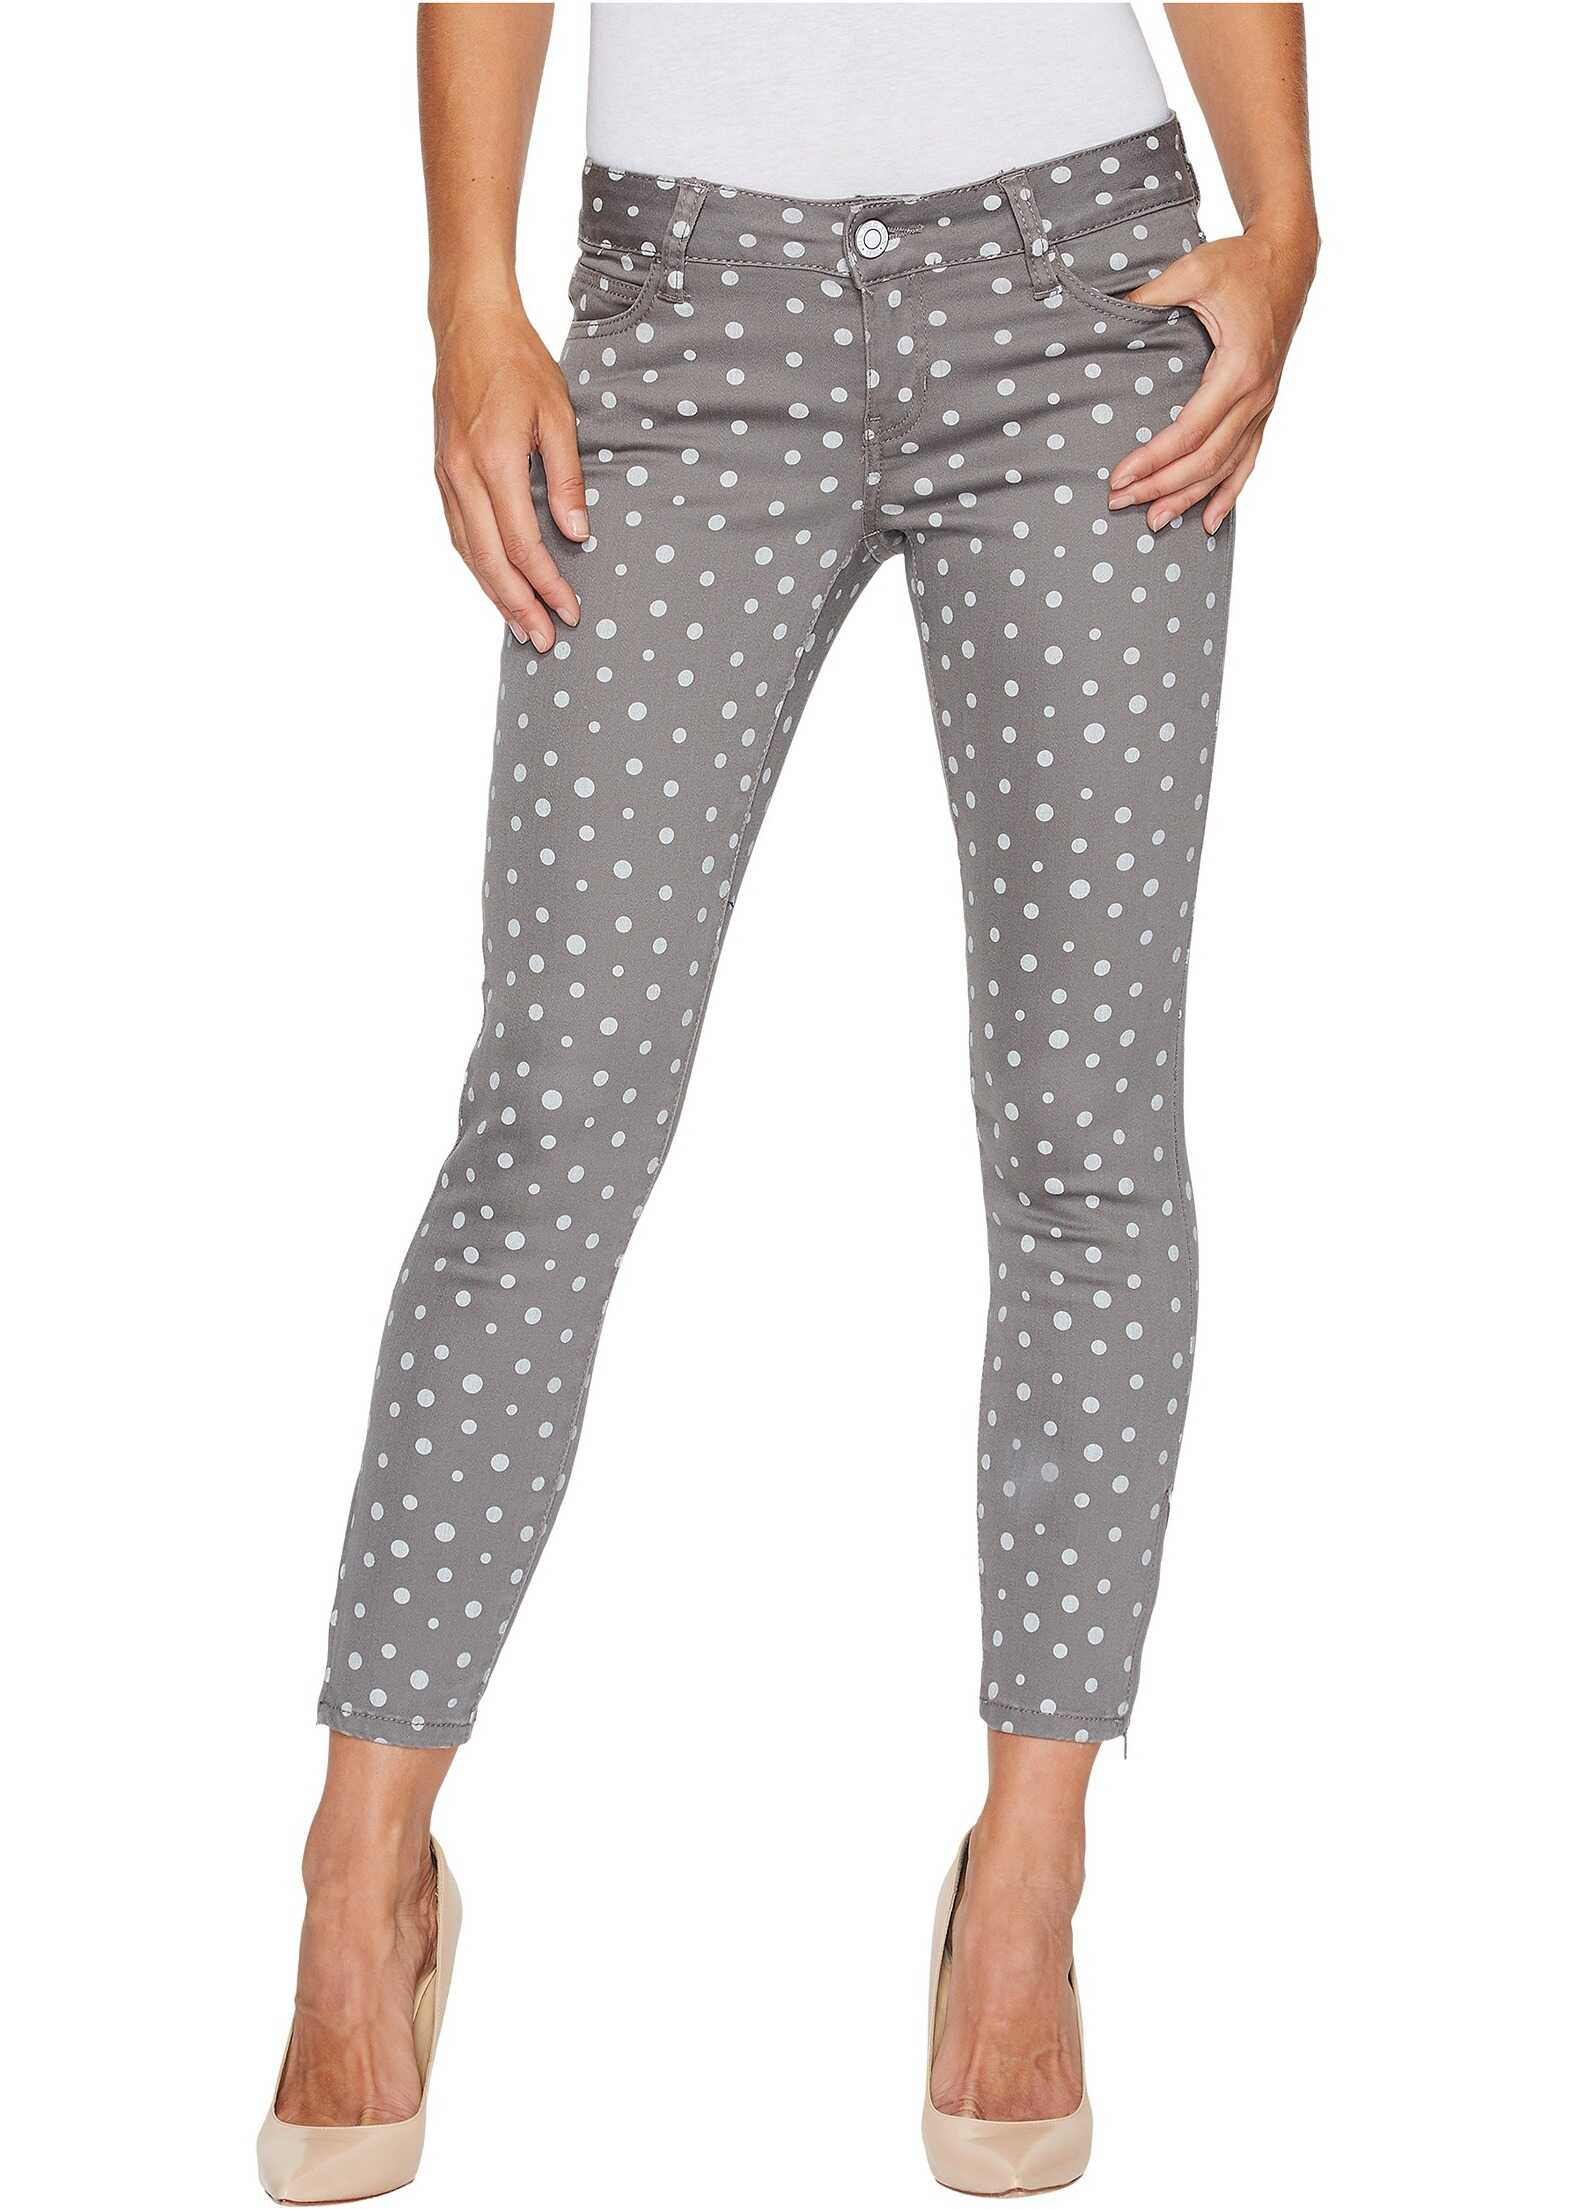 U.S. POLO ASSN. Skinny Ankle Brit Stretch Denim Jeans in Grey/Polka Dot Grey/Polka Dot